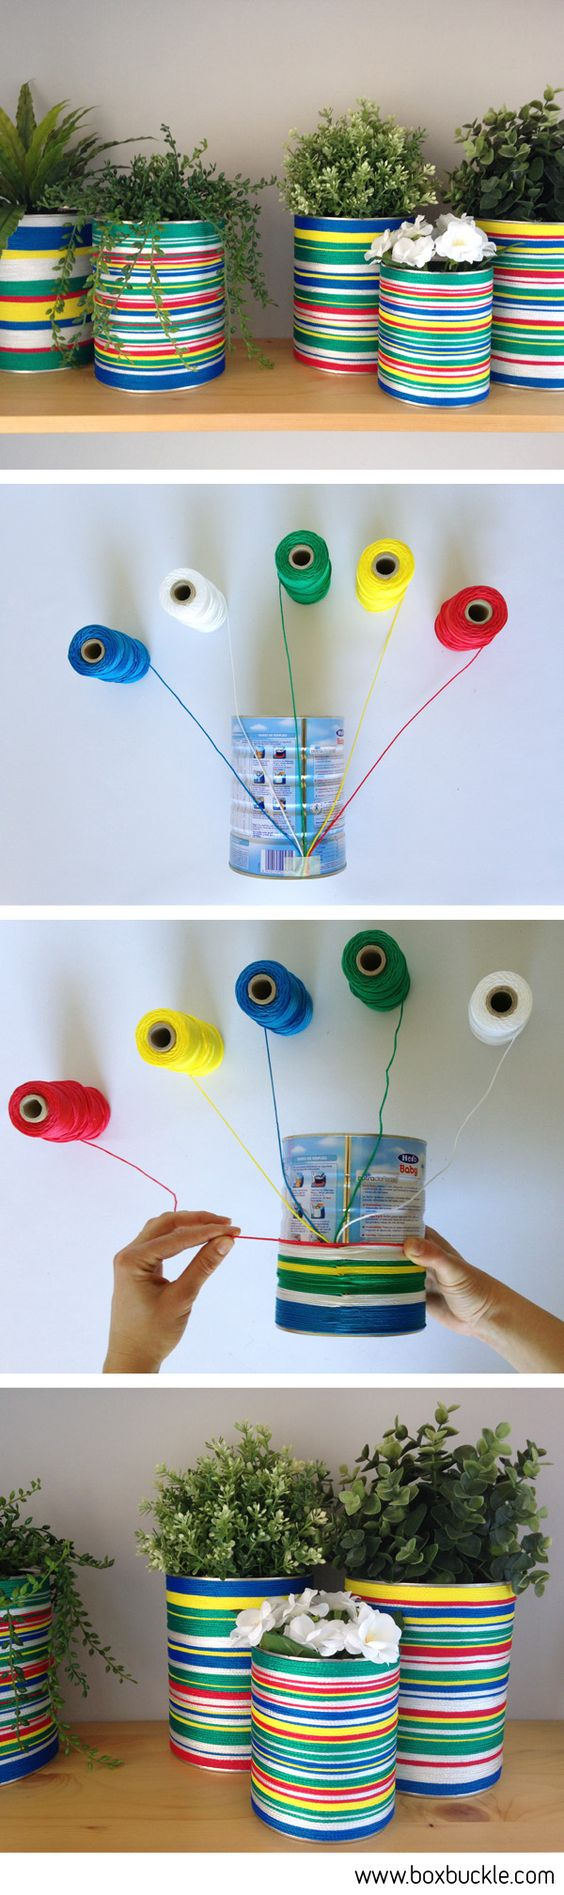 DIY TUTORIAL, bote de leche infantil forrado con cordeles de colores (idea de DAMA design) colored tin can planters with strings: